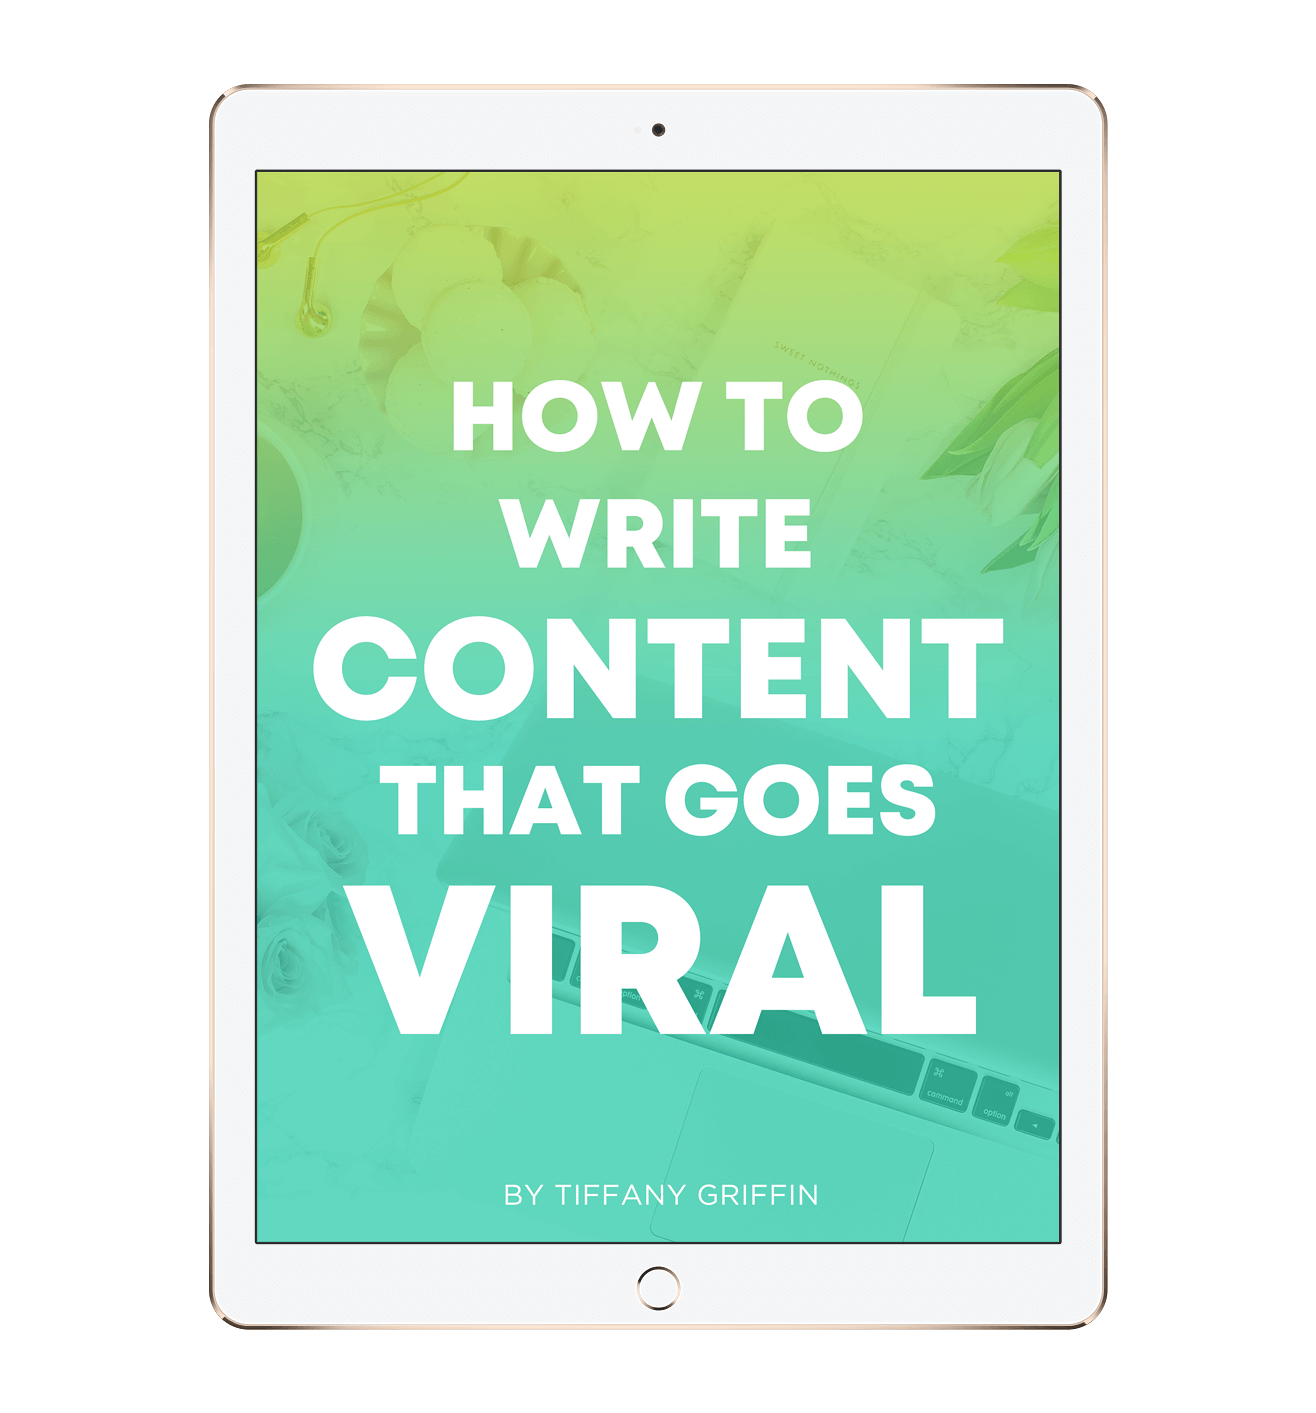 How to Write Content That Goes Viral